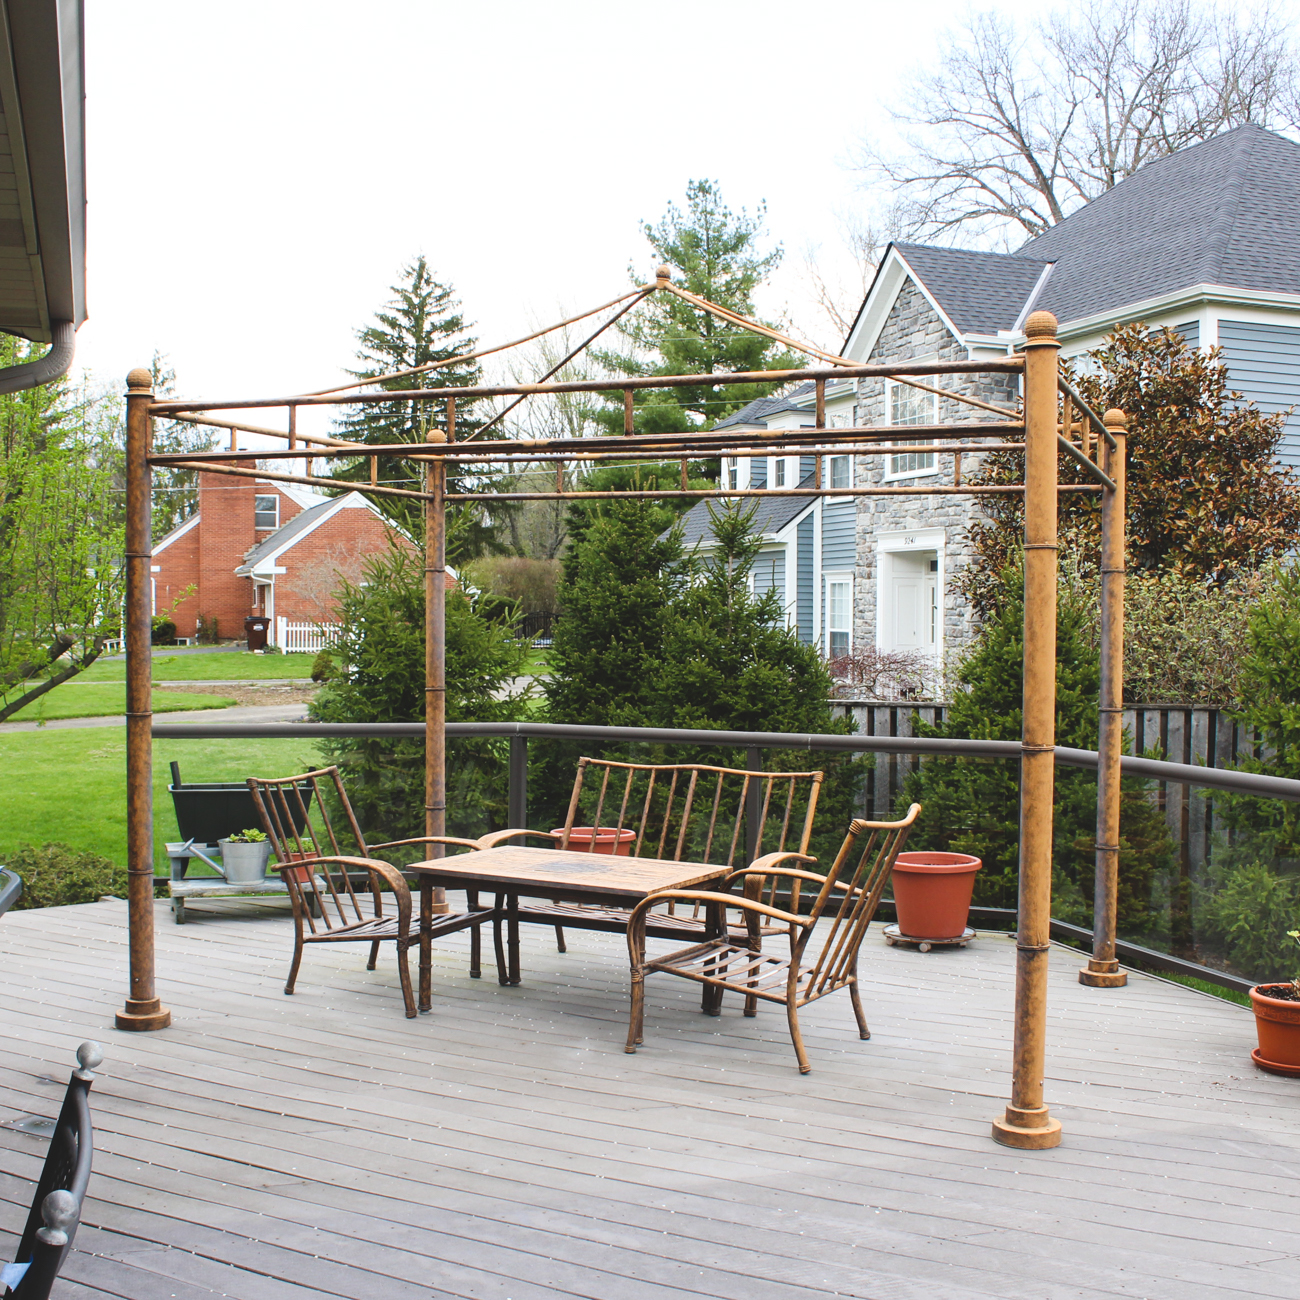 Frontgate Patio Furniture and Substantial Metal Gazebo EBTH